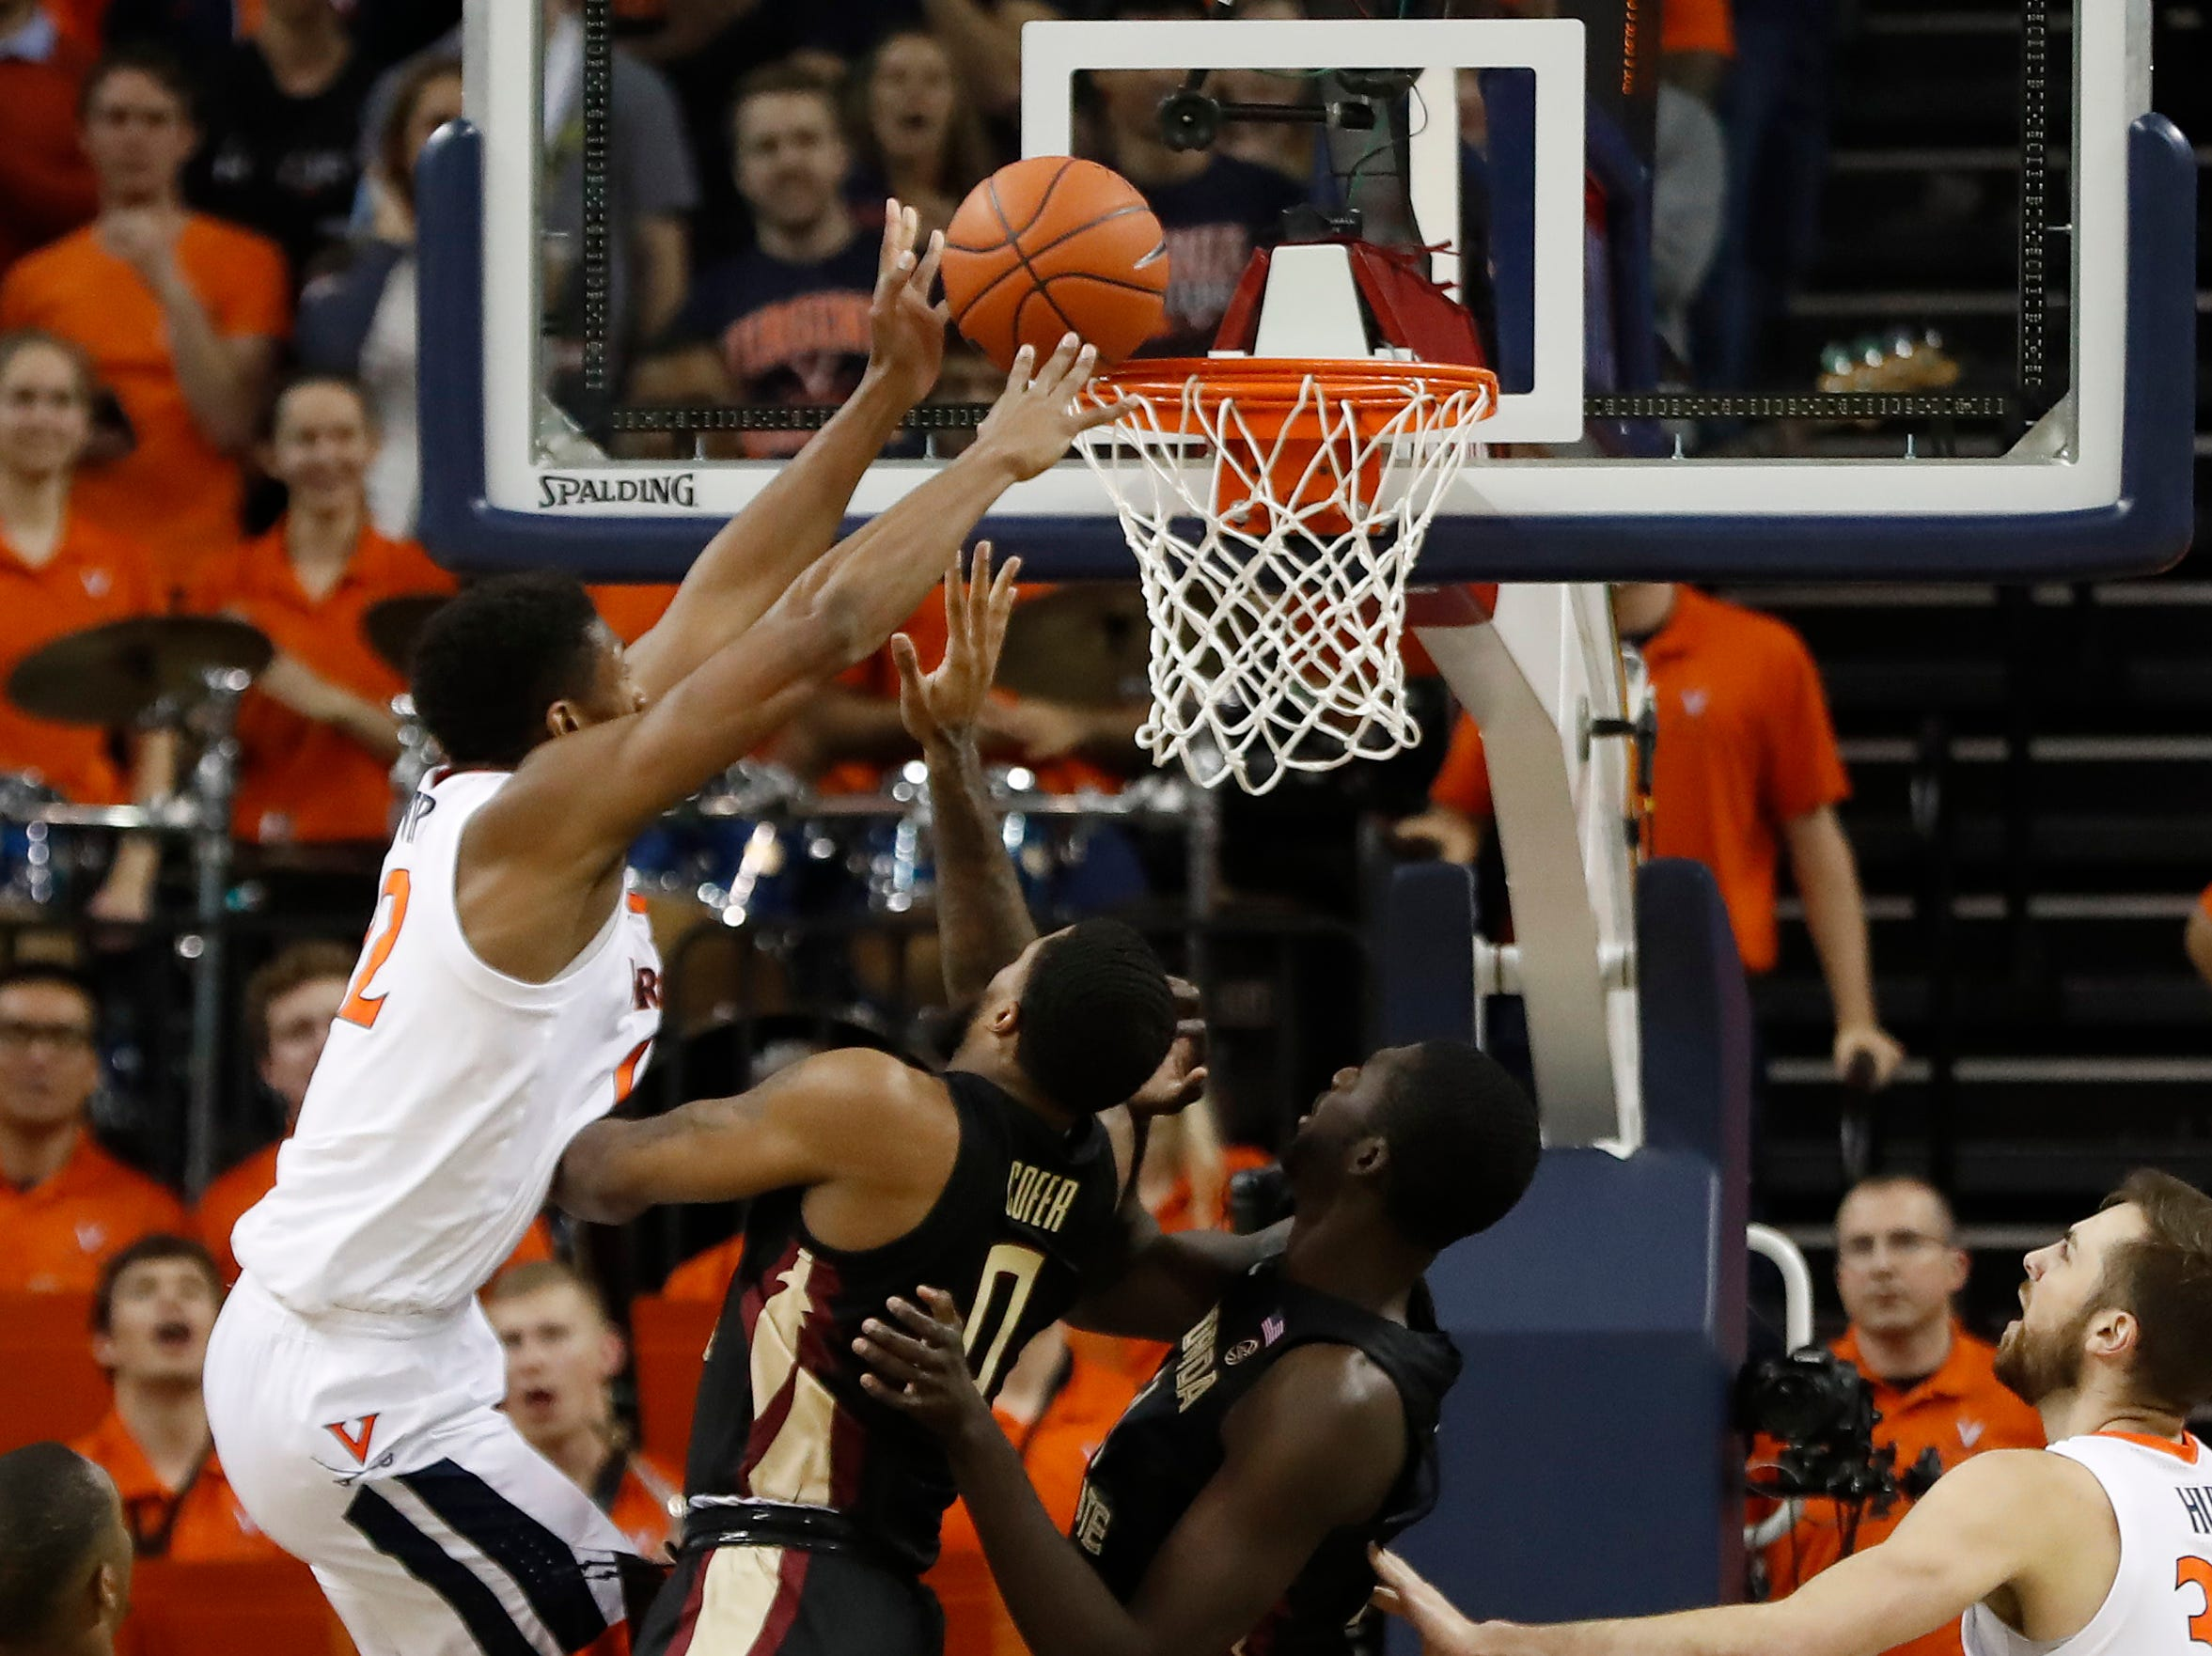 Jan 5, 2019; Charlottesville, VA, USA; Virginia Cavaliers guard De'Andre Hunter (12) is fouled while attempting to dunk the ball by Florida State Seminoles forward Phil Cofer (0) in the first half at John Paul Jones Arena. Mandatory Credit: Geoff Burke-USA TODAY Sports